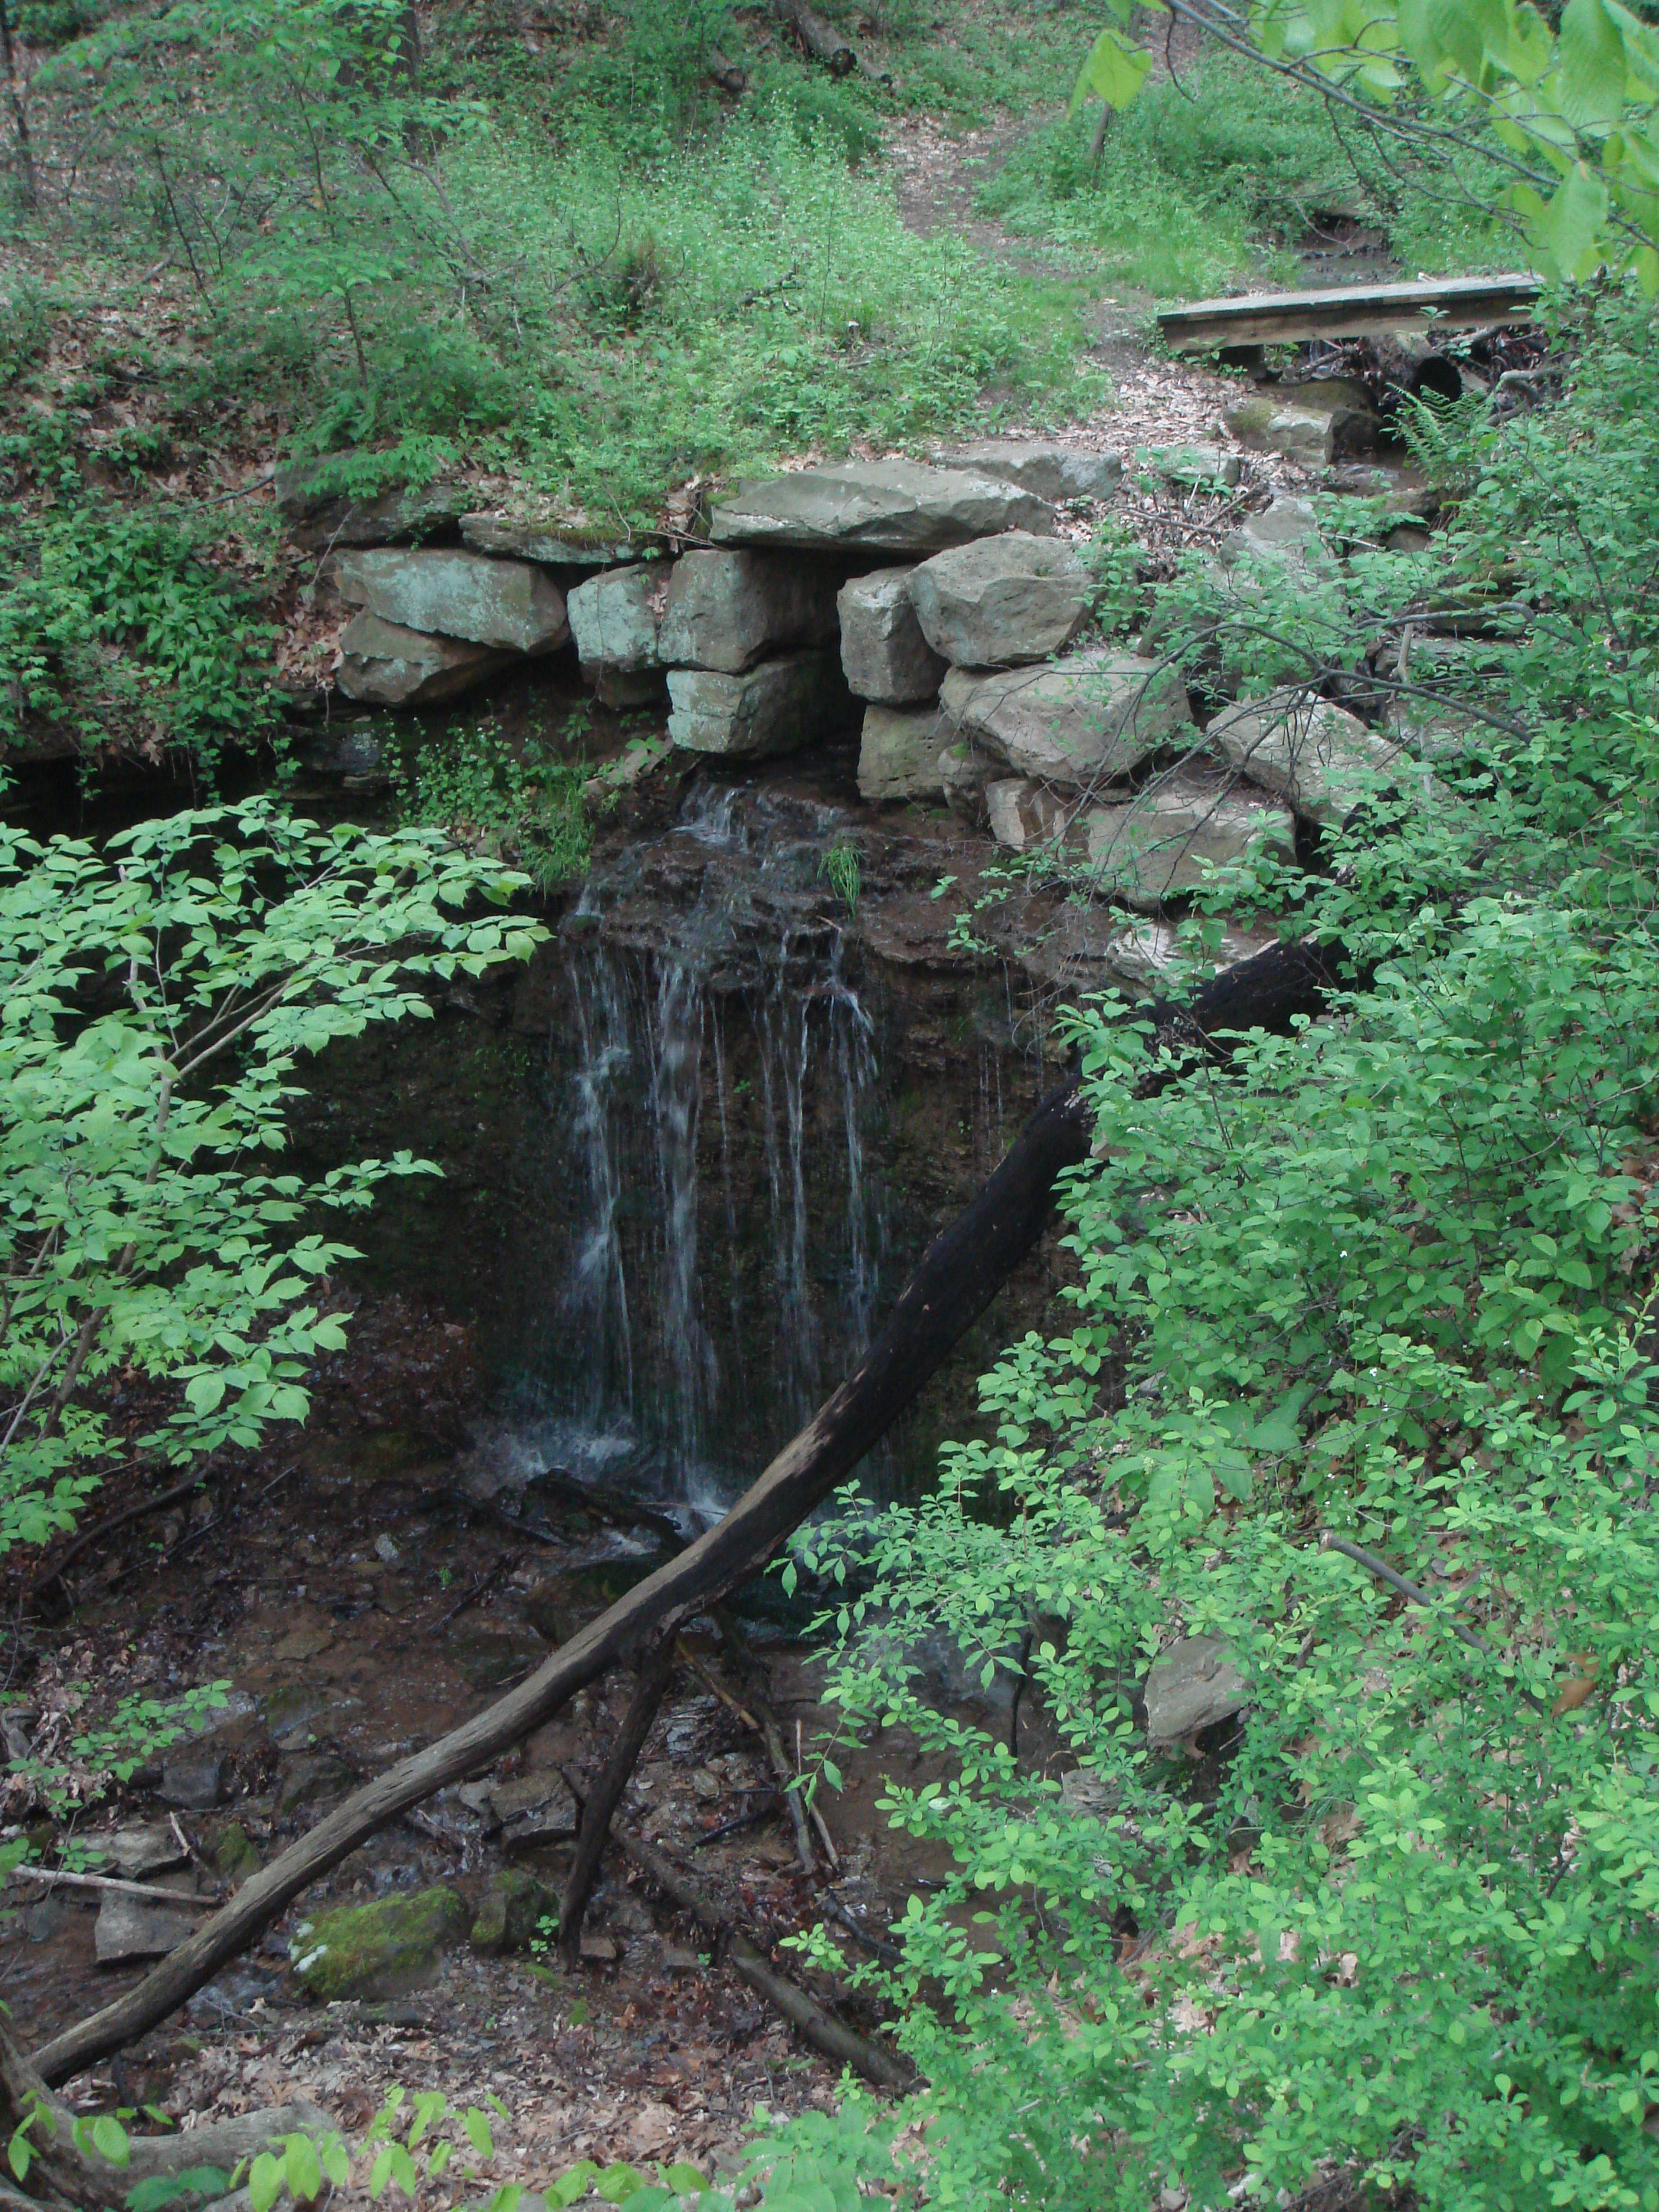 Waterfall at Beachwood Farms, as seen from Pine Hollow Trail (Photo by Andrew)